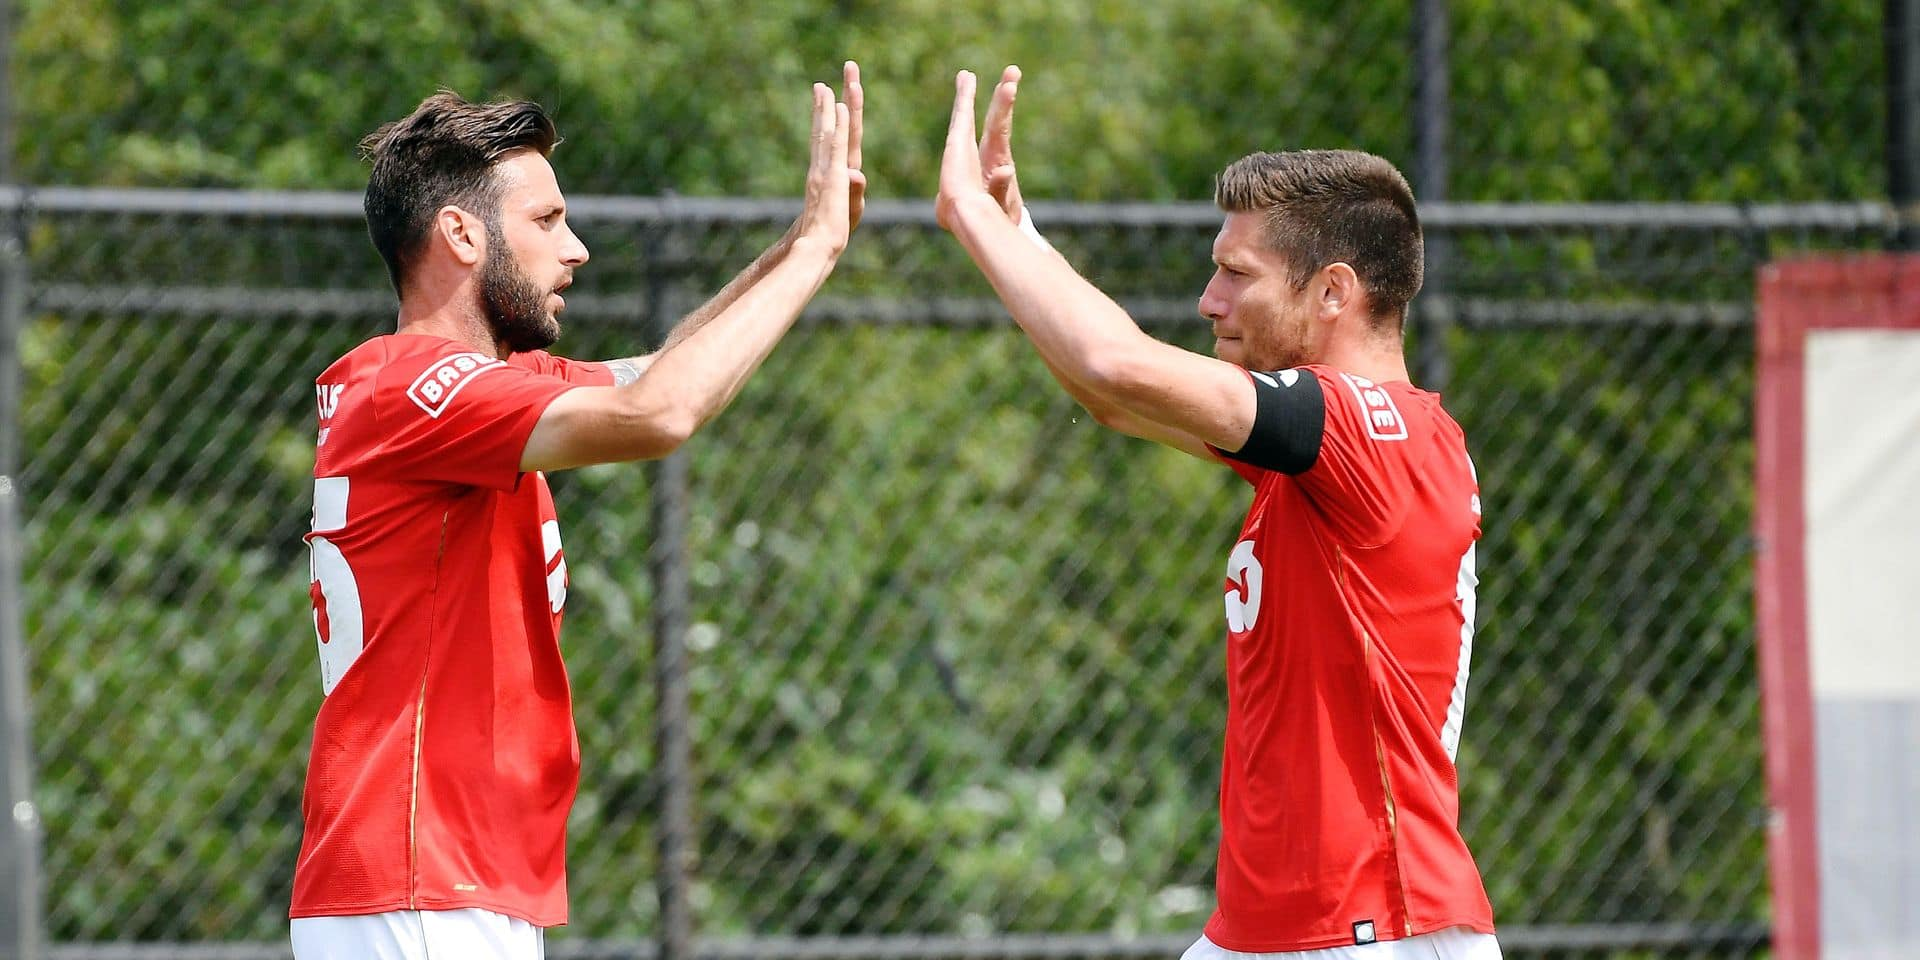 TEGELEN, THE NETHERLANDS - JULY 6 : Duje Cop of Standard Liege celebrates scoring a goal pictured during a pre-season friendly match between Standard and FK Oleksandria during last day at the summer stage camp Rheine 06/07/2019 ( Photo by Philippe Crochet / Photonews